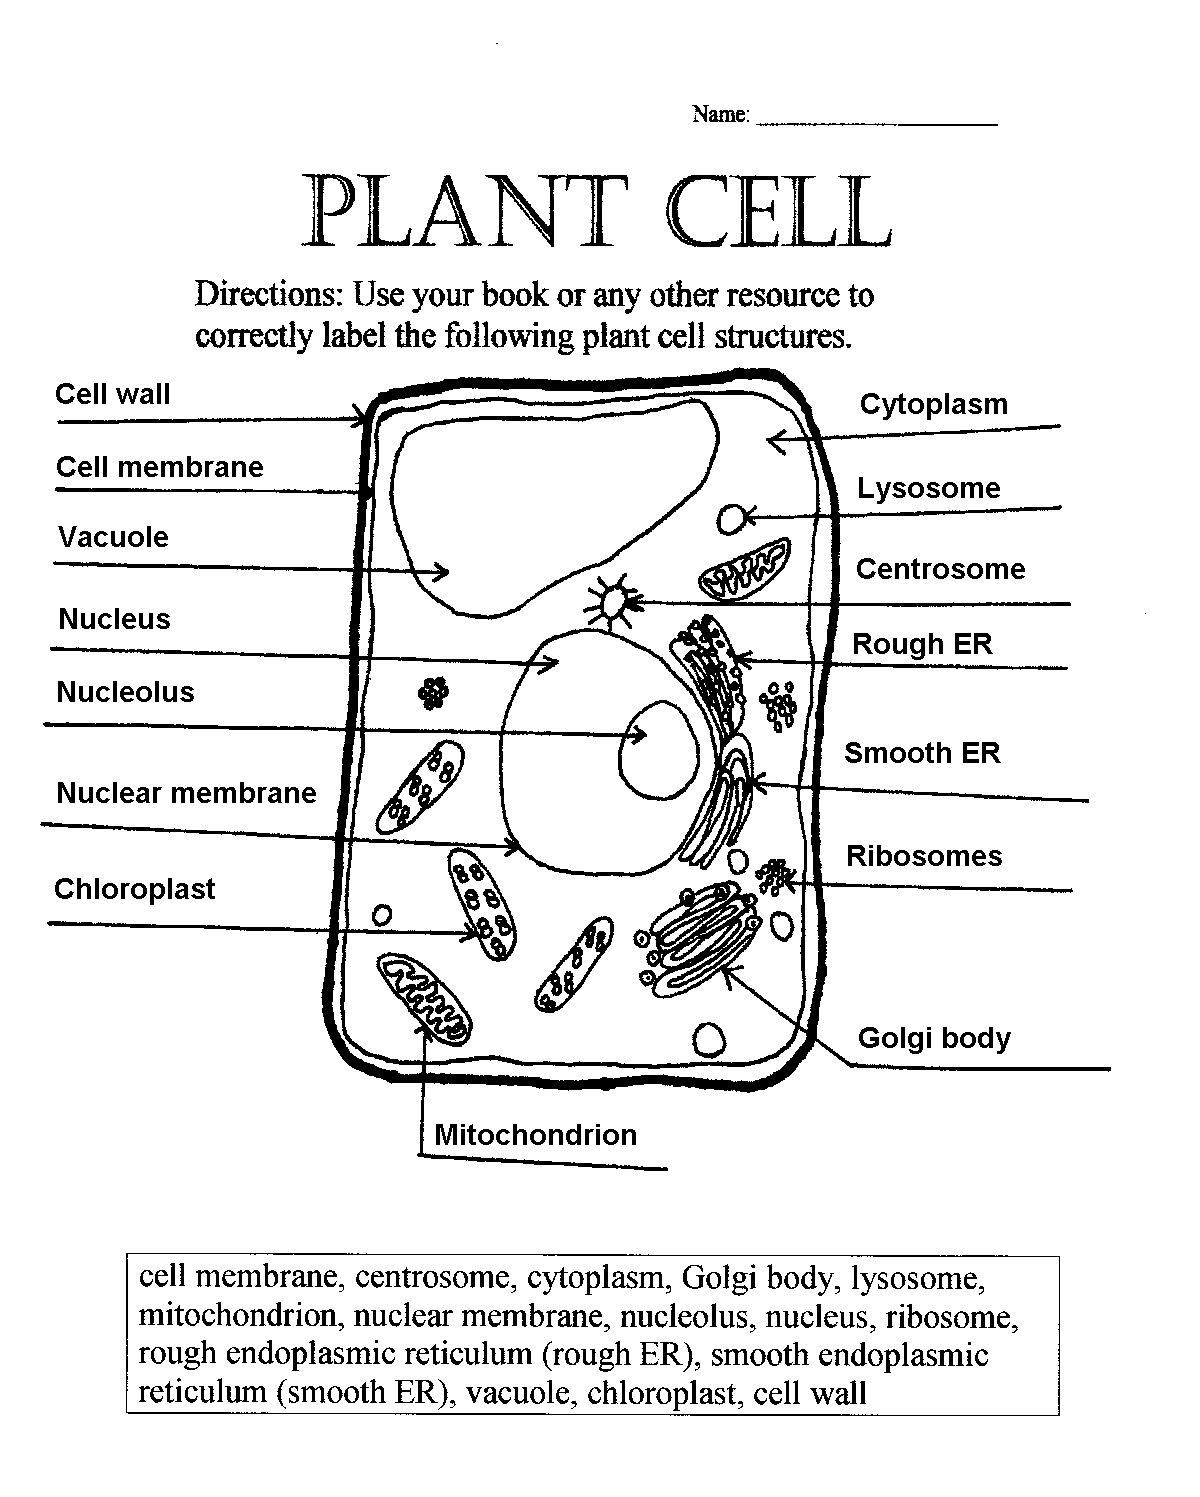 Blank Plant Cell Diagram Worksheet New Plant Cell Parts Worksheet With Word Bank Bank Blank Cell Di In 2020 Cells Worksheet Plant Cells Worksheet Plant Cell Diagram